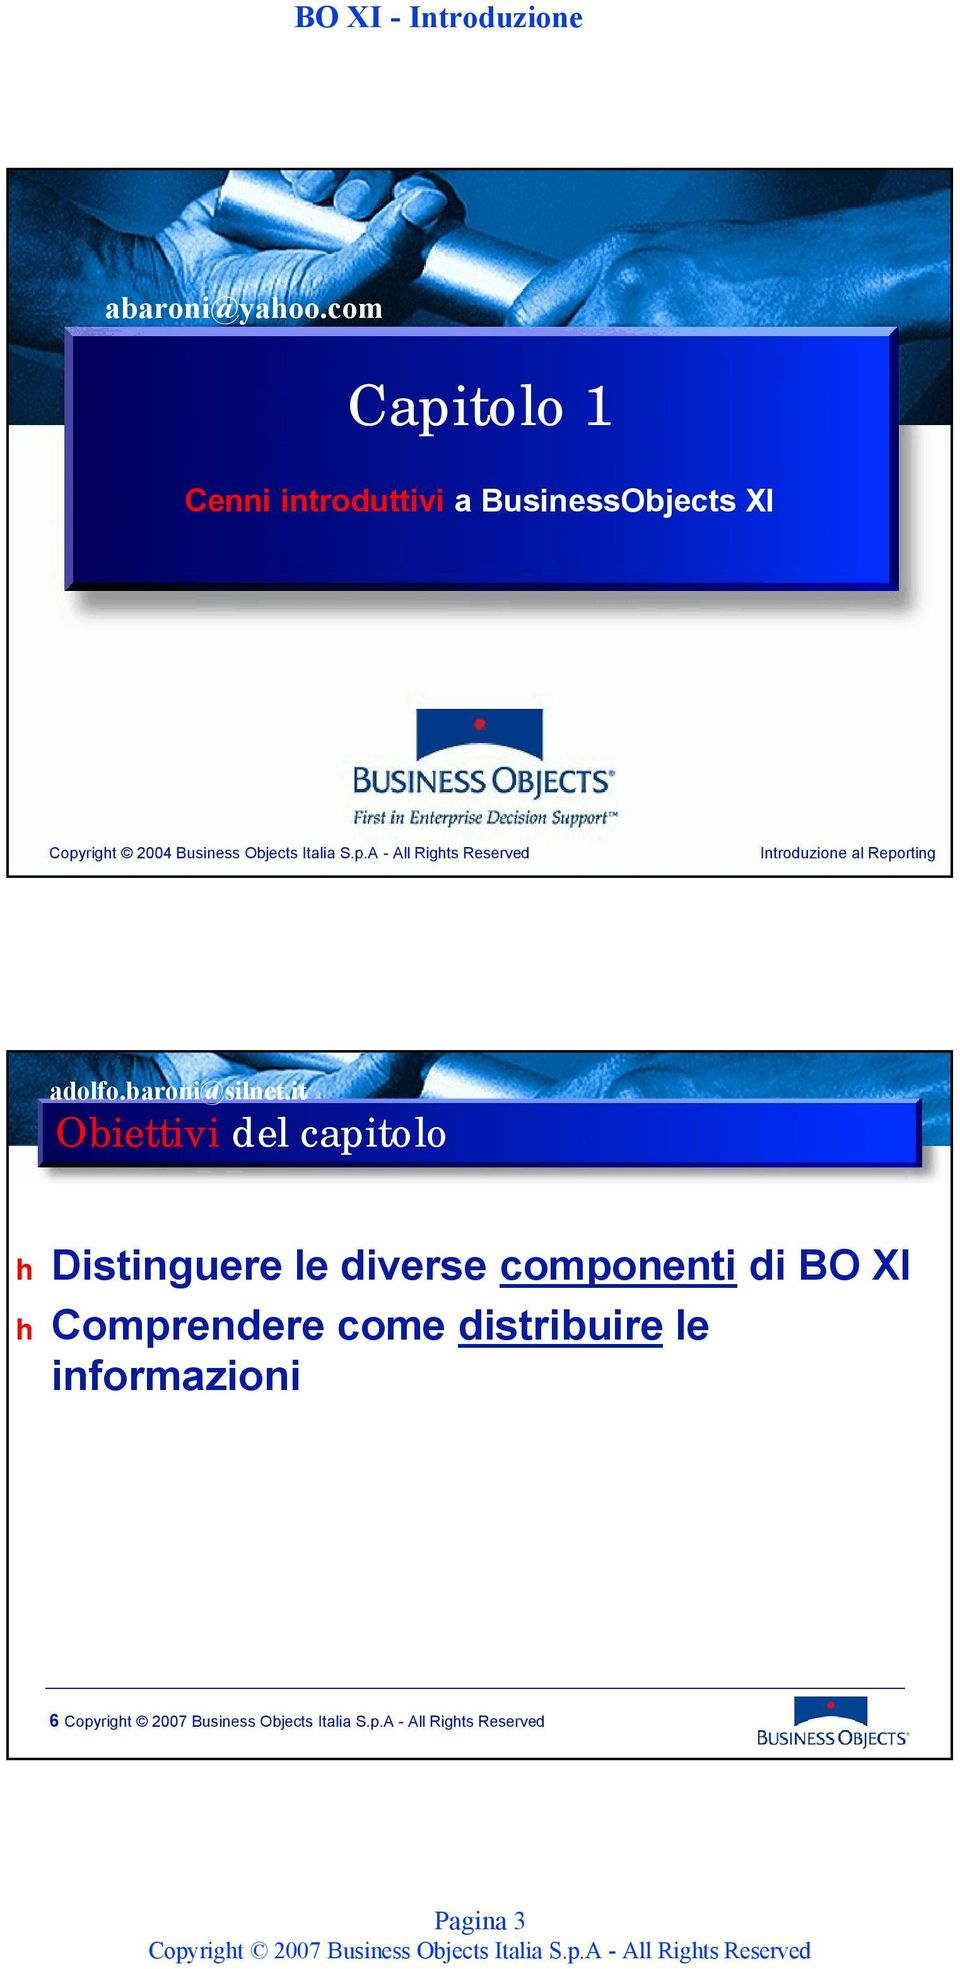 Business Objects Italia S.p.